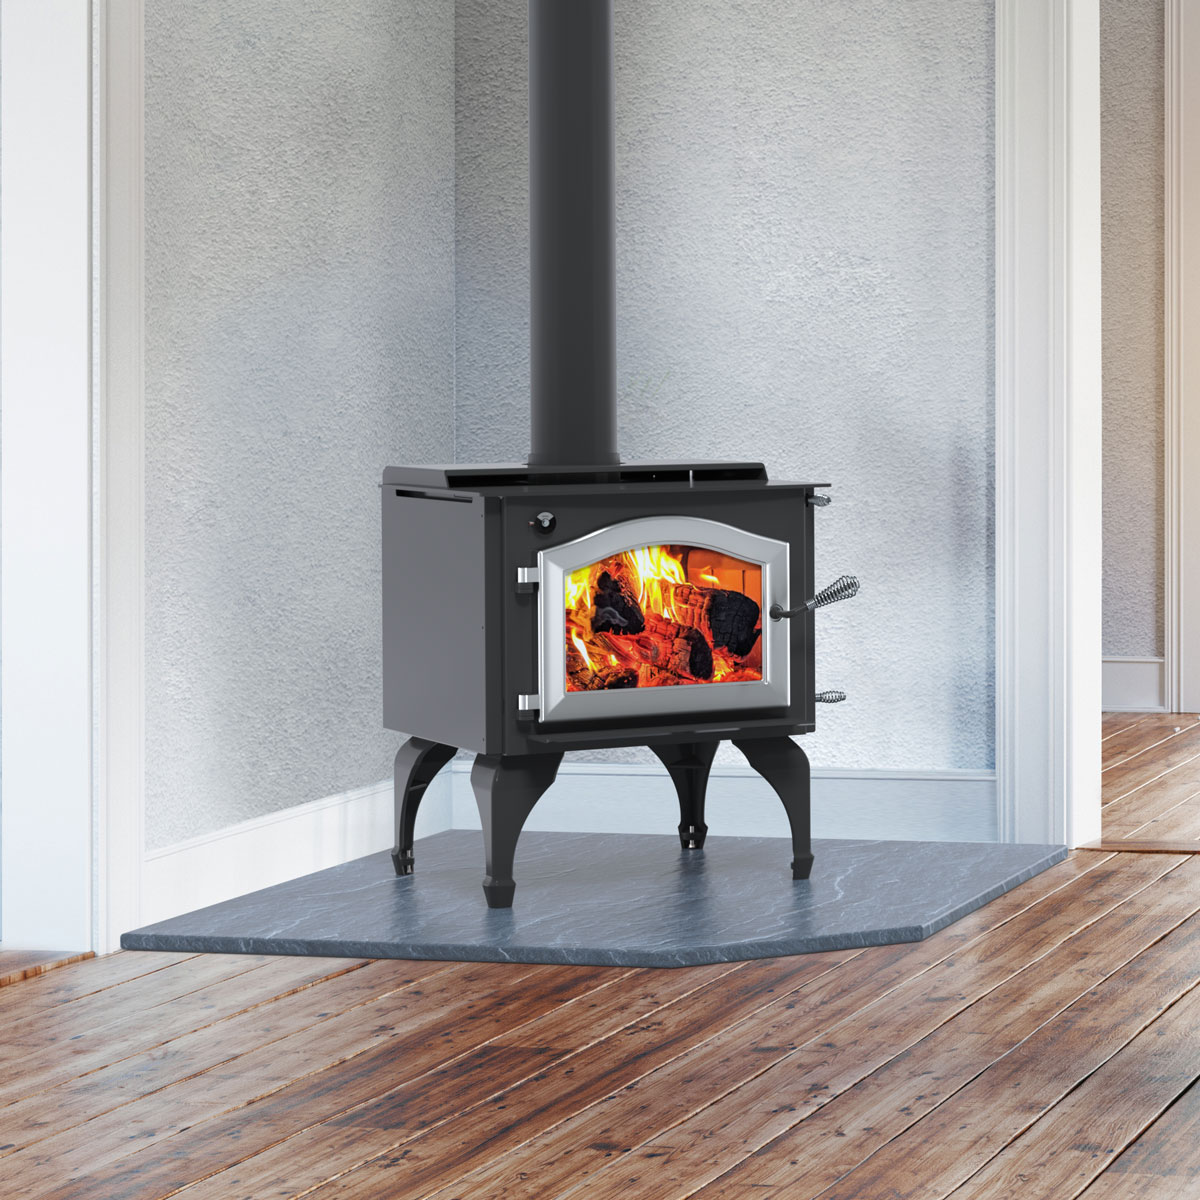 Le Wood Stoves Freestanding Le Wood Stoves By Kuma Stoves